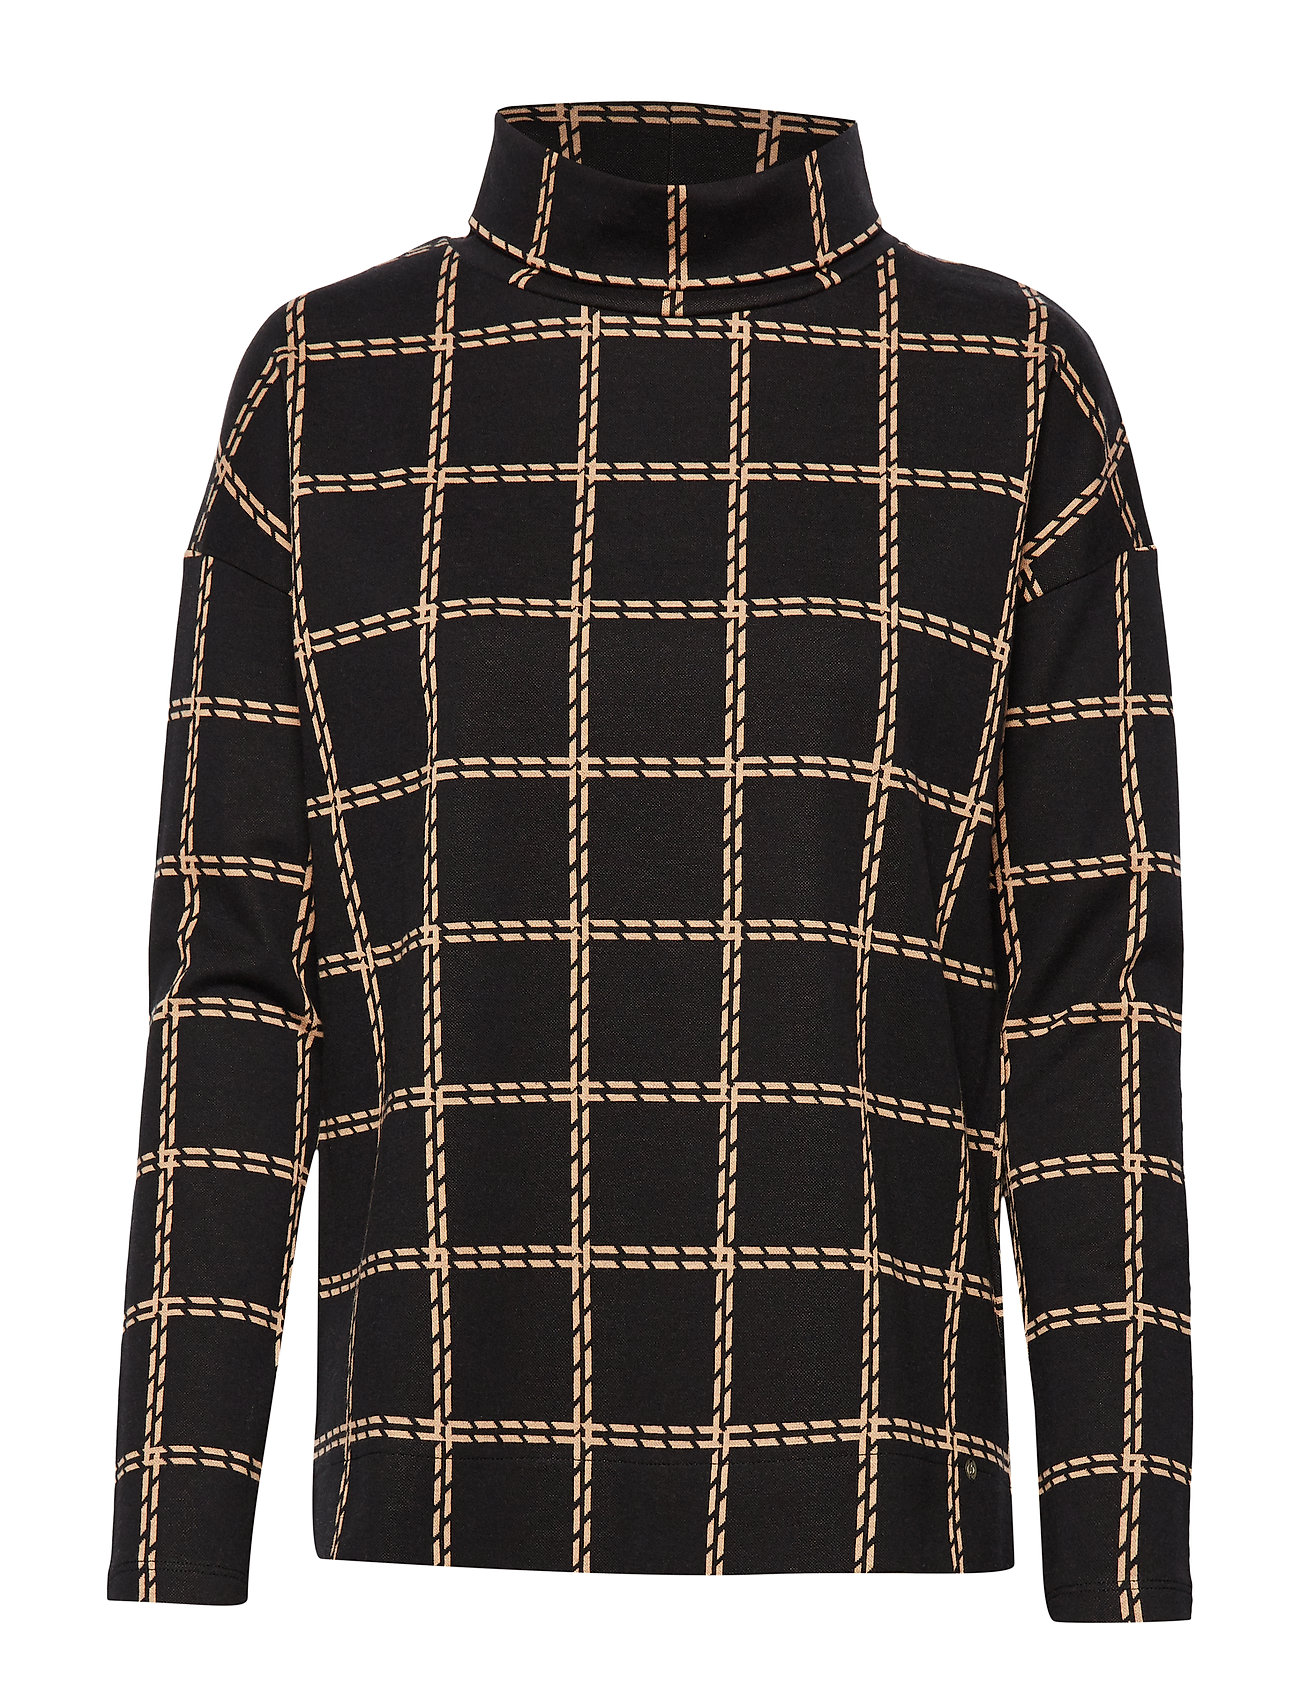 Gerry Weber Edition T-SHIRT LONG-SLEEVE - BLACK/BROWN CHECK